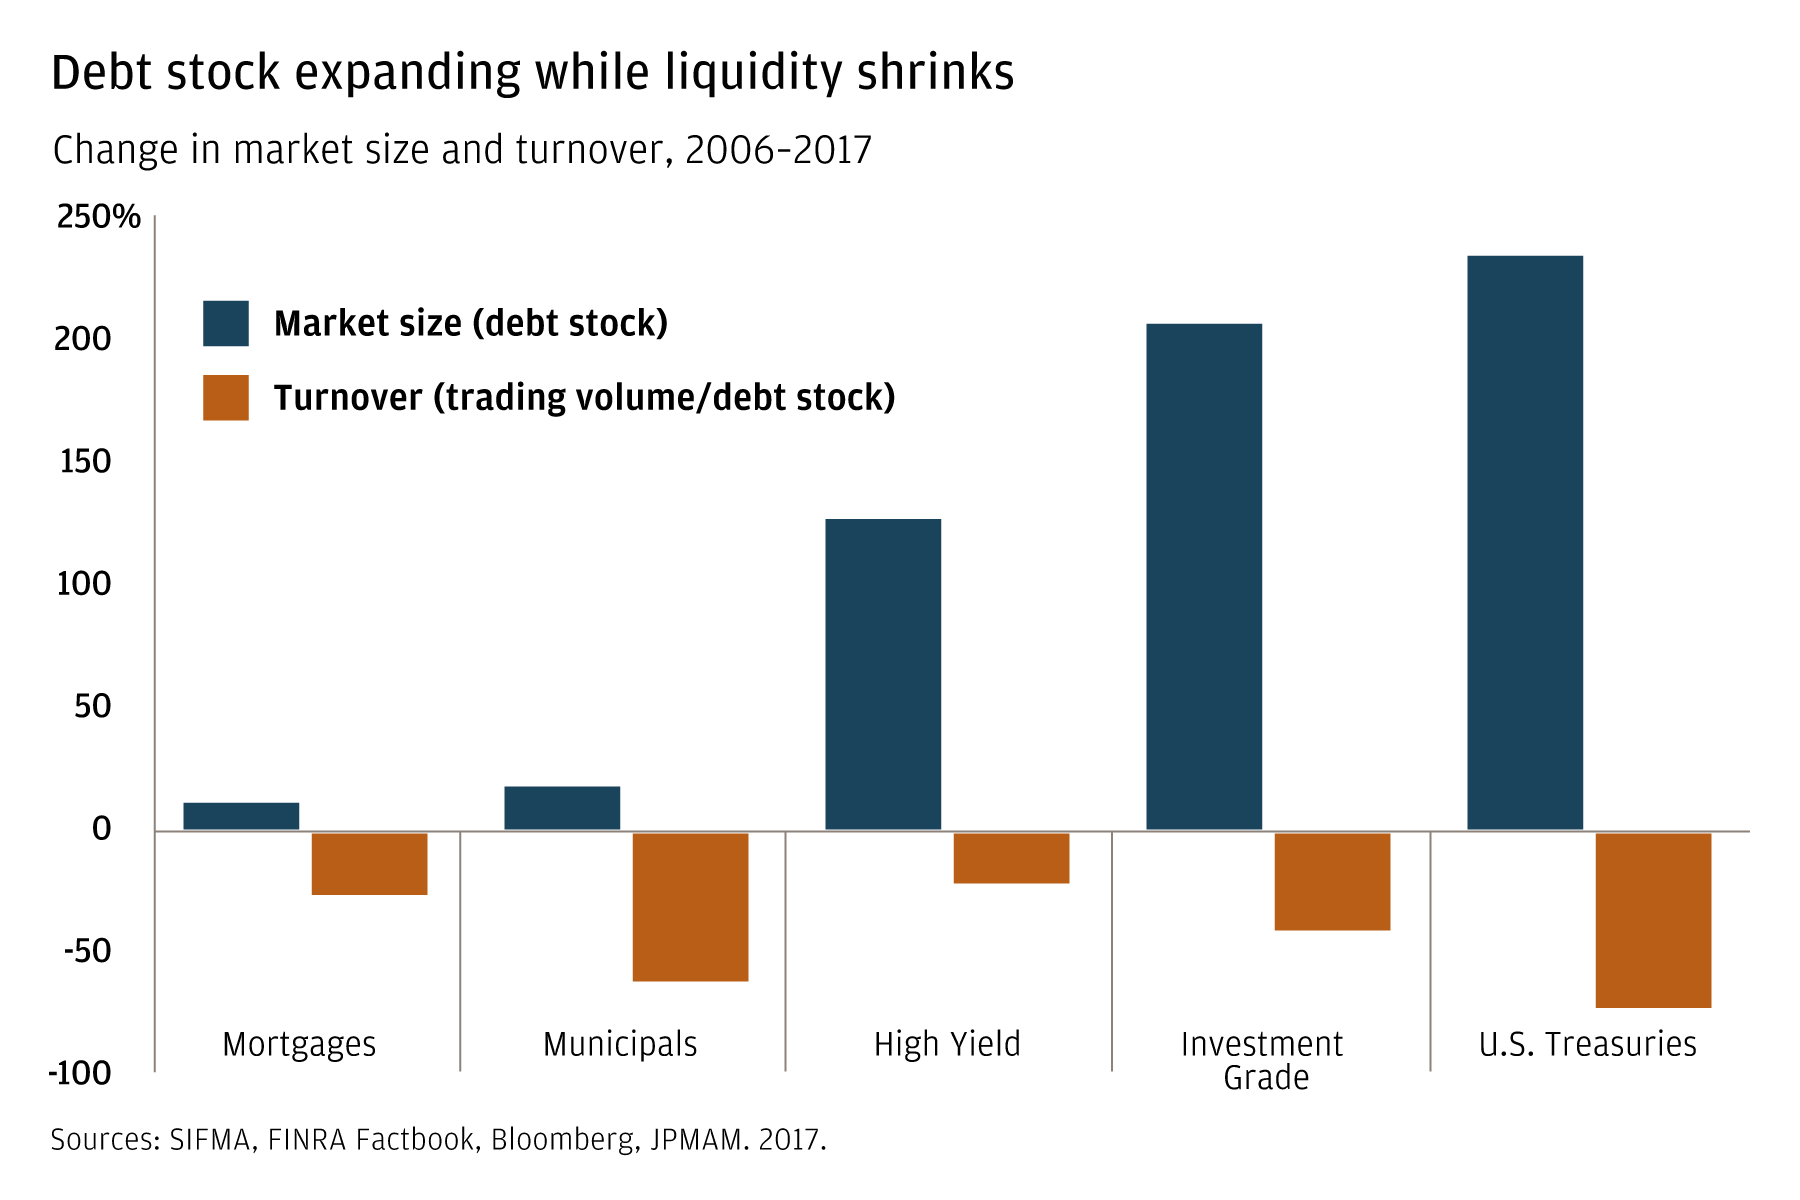 Debt stock expanding while liquidity shrinks